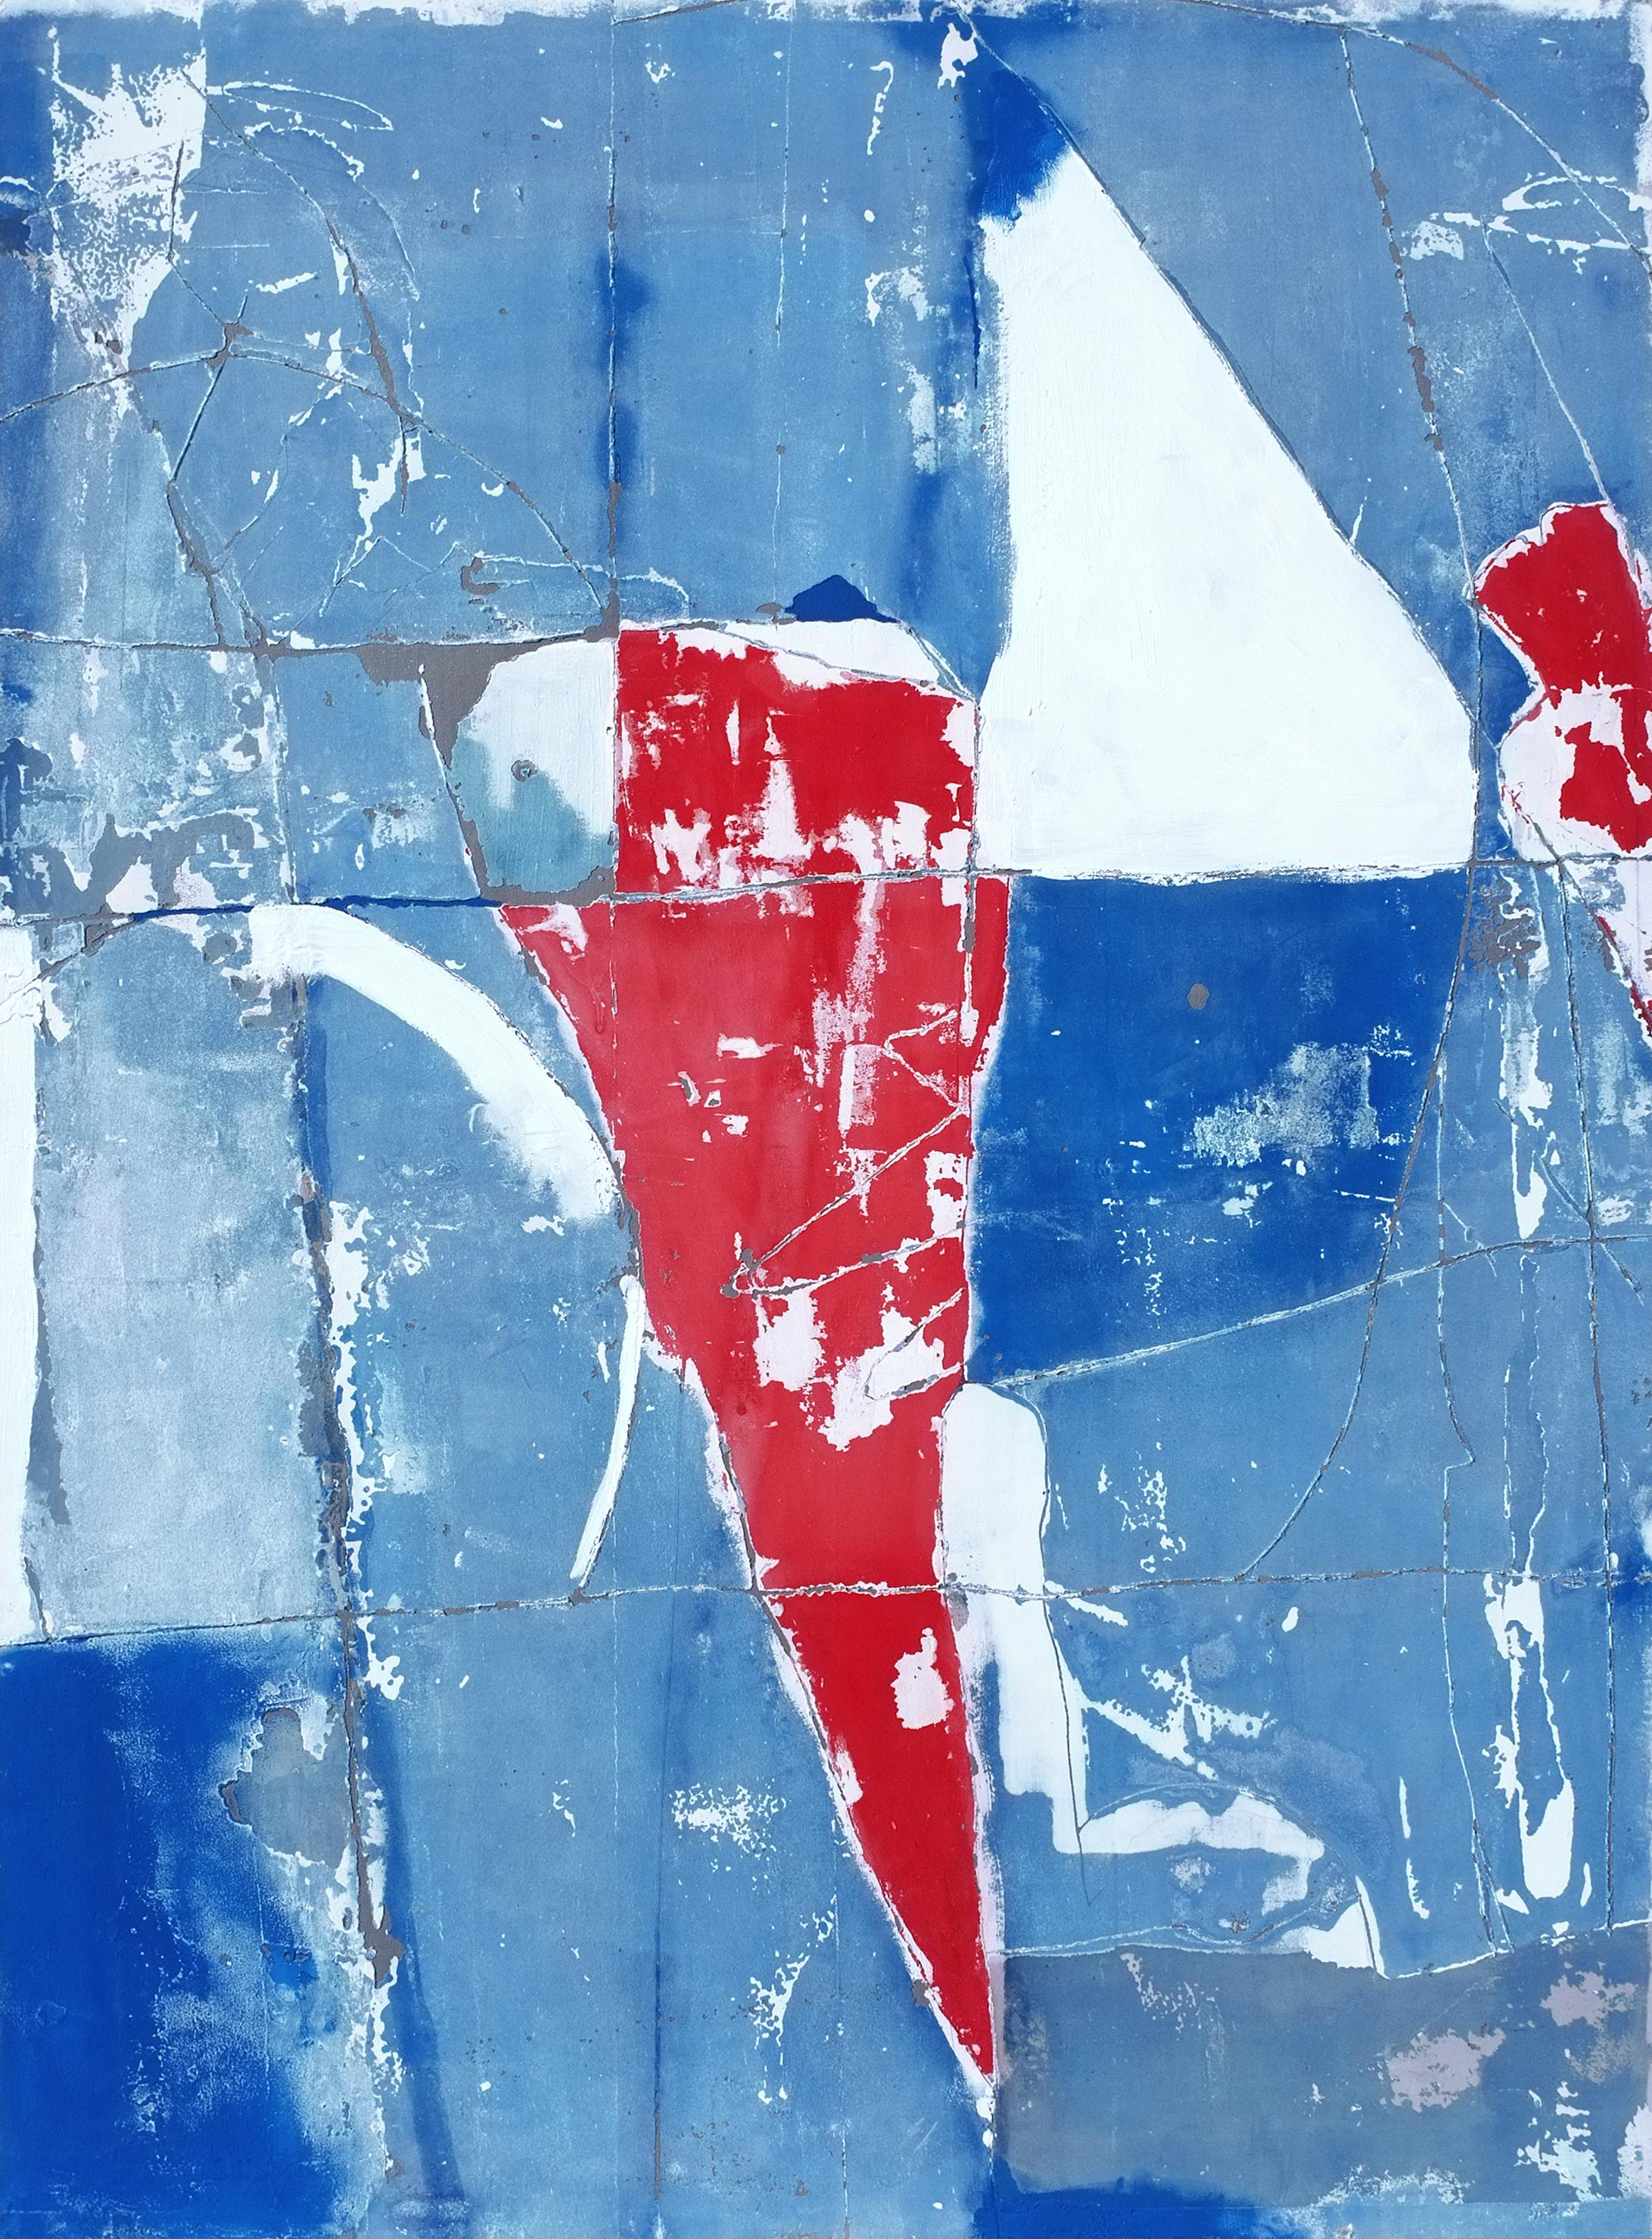 Unfolded Thoughts, Contemporary Abstract Mixed media Blue Red Collage Canvas